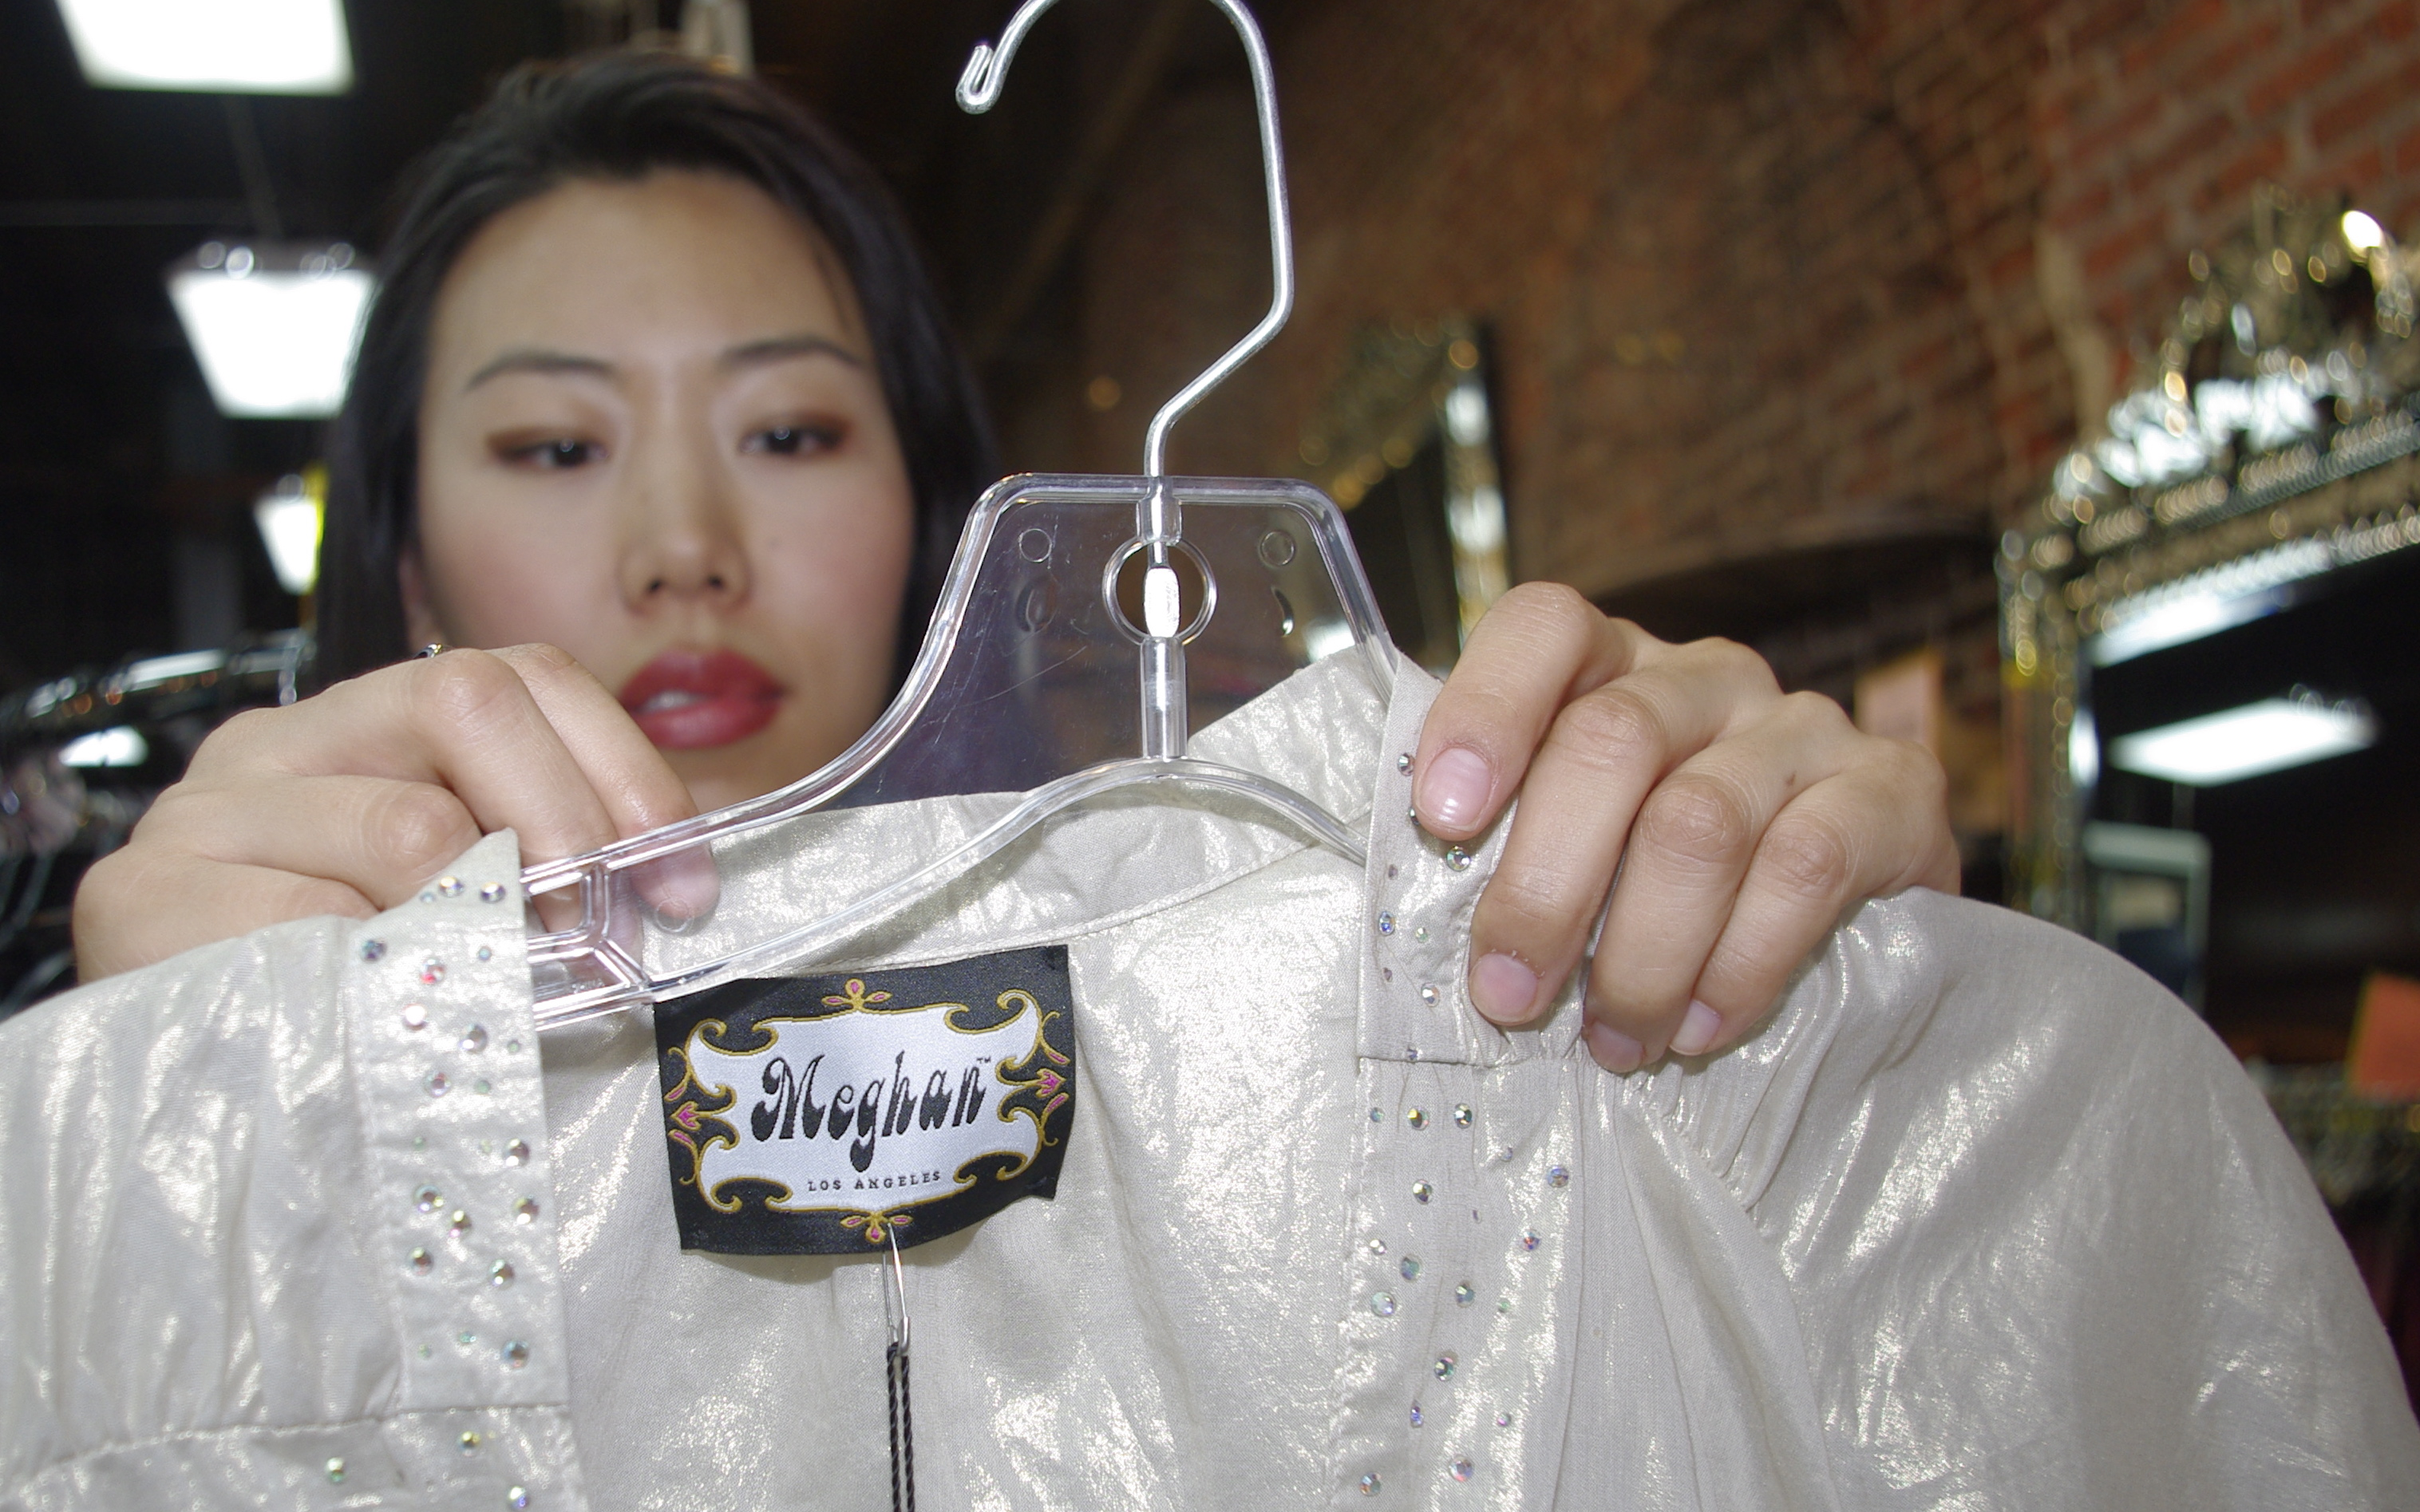 Jina Huh inspects a blouse by Meghan.